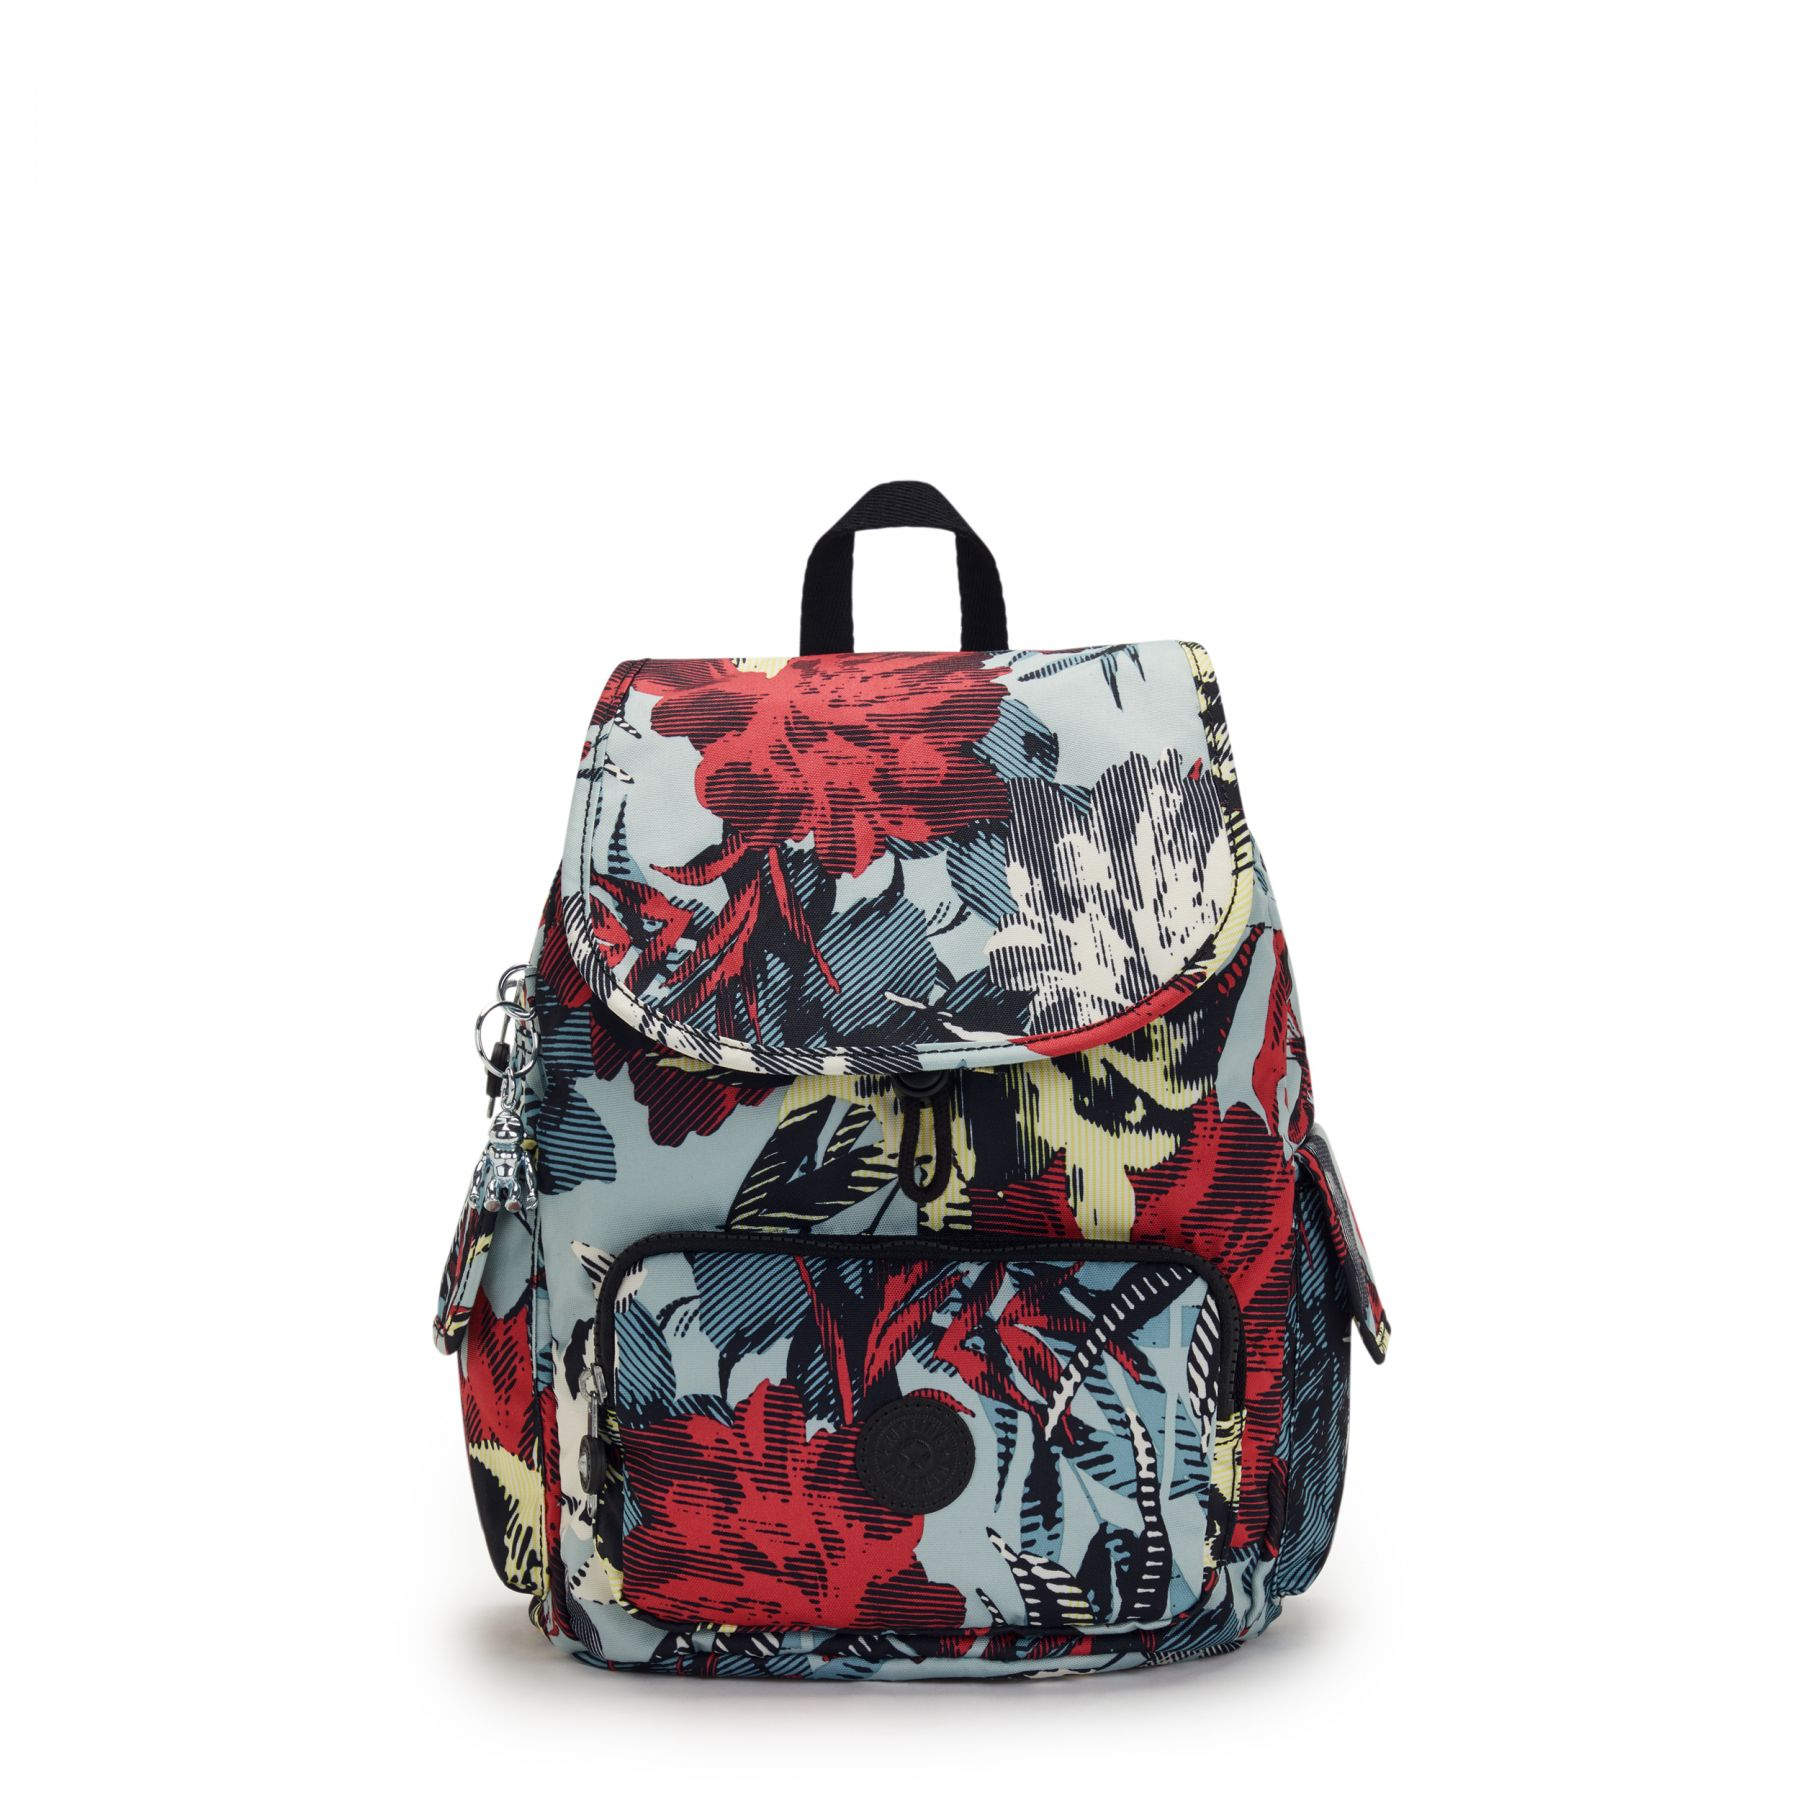 CITY PACK S BACKPACKS by Kipling - Front view